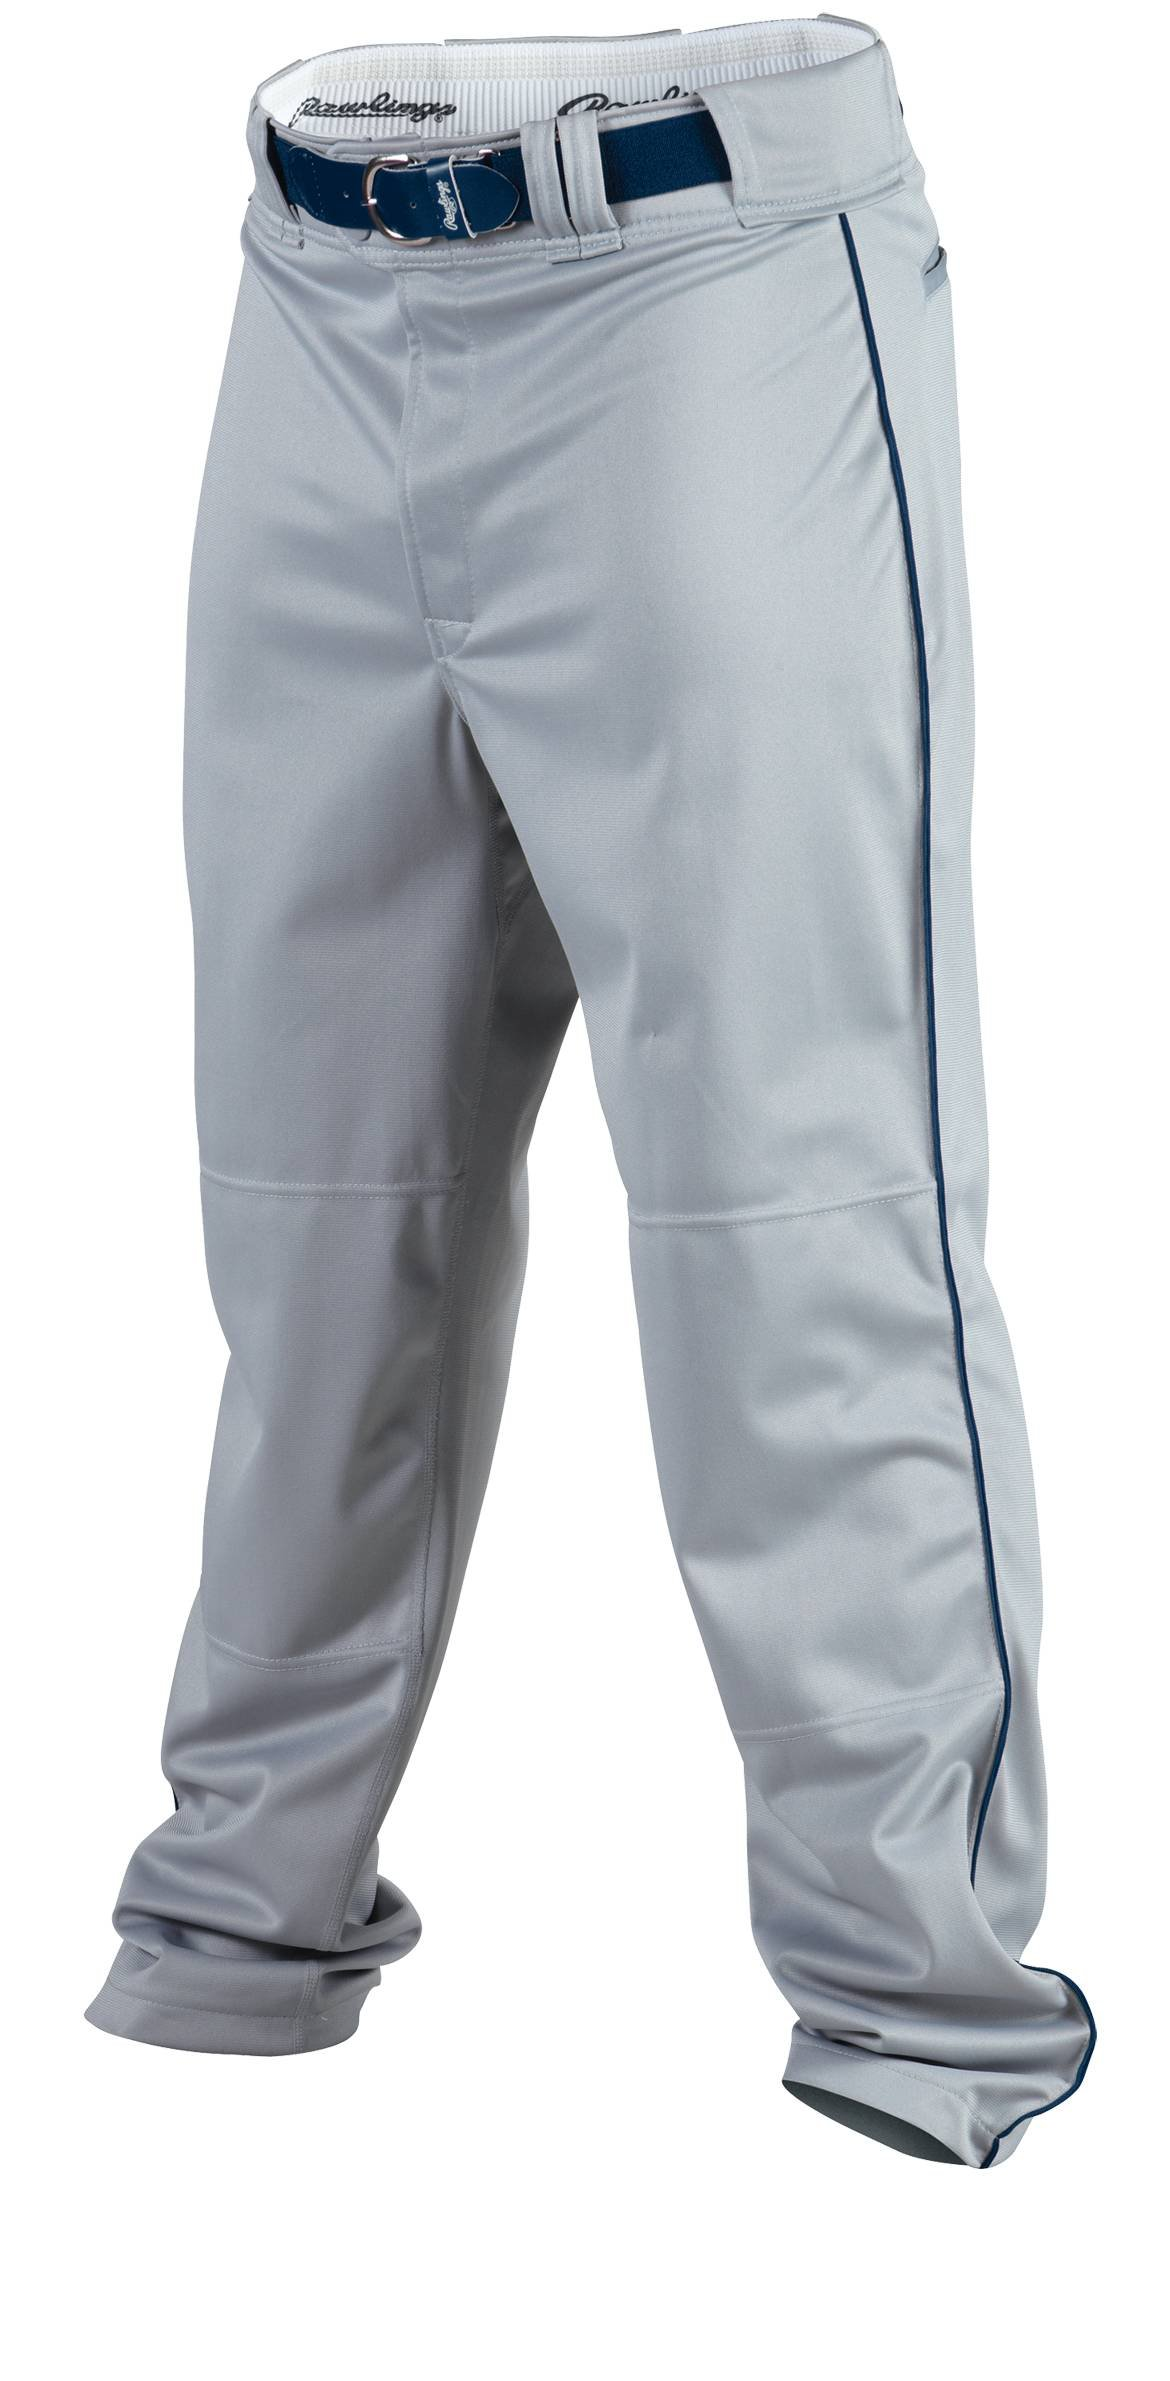 Rawlings Men's Baseball Pant